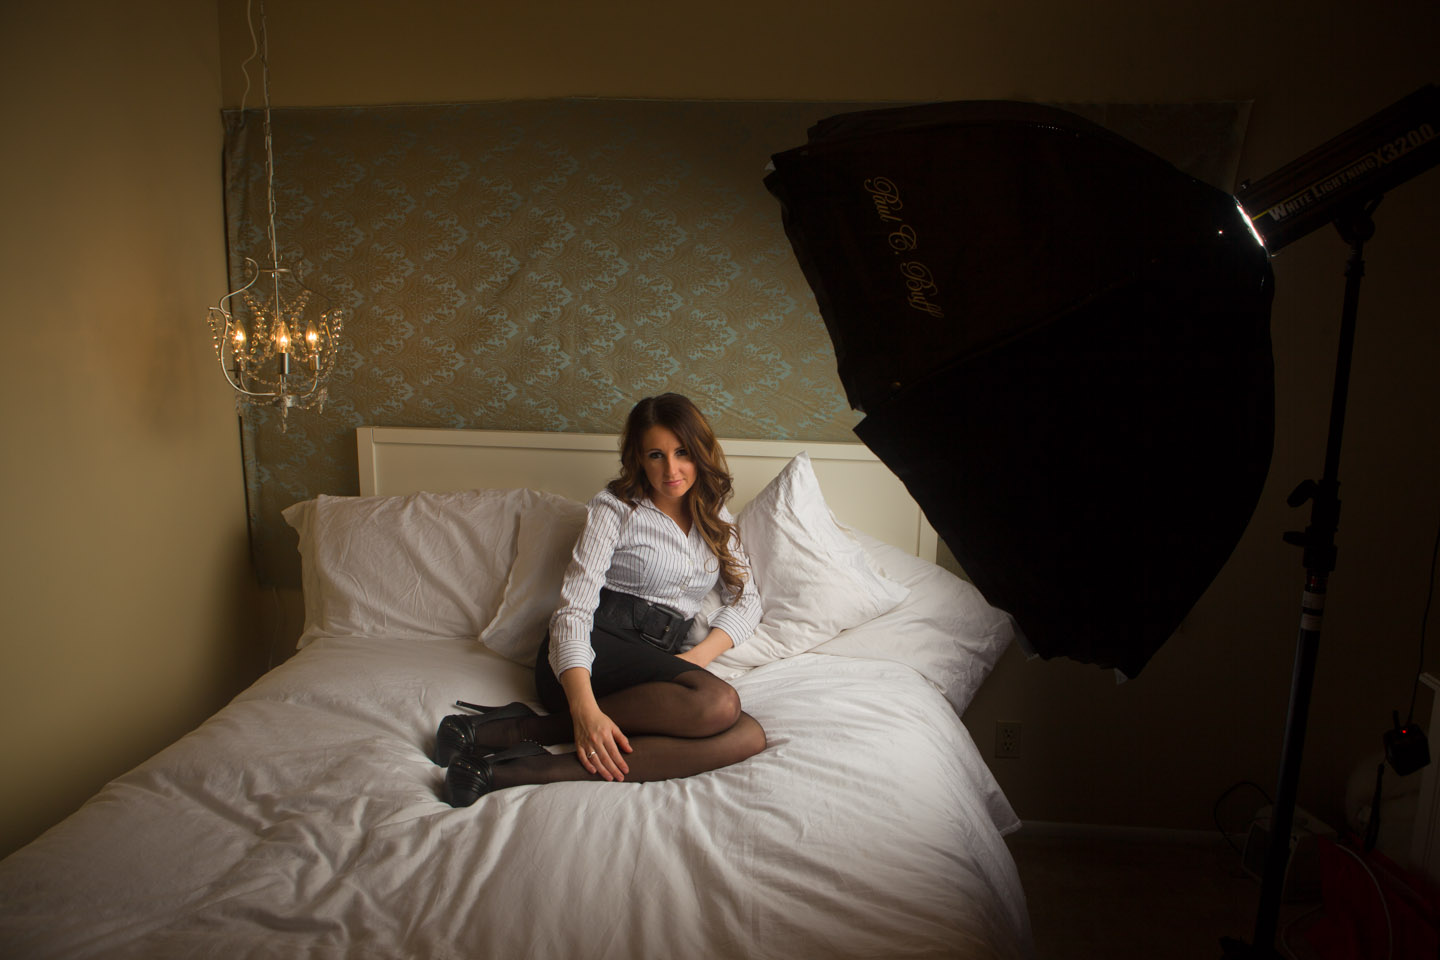 Behind the scenes lighting for the boudoir photo shoot